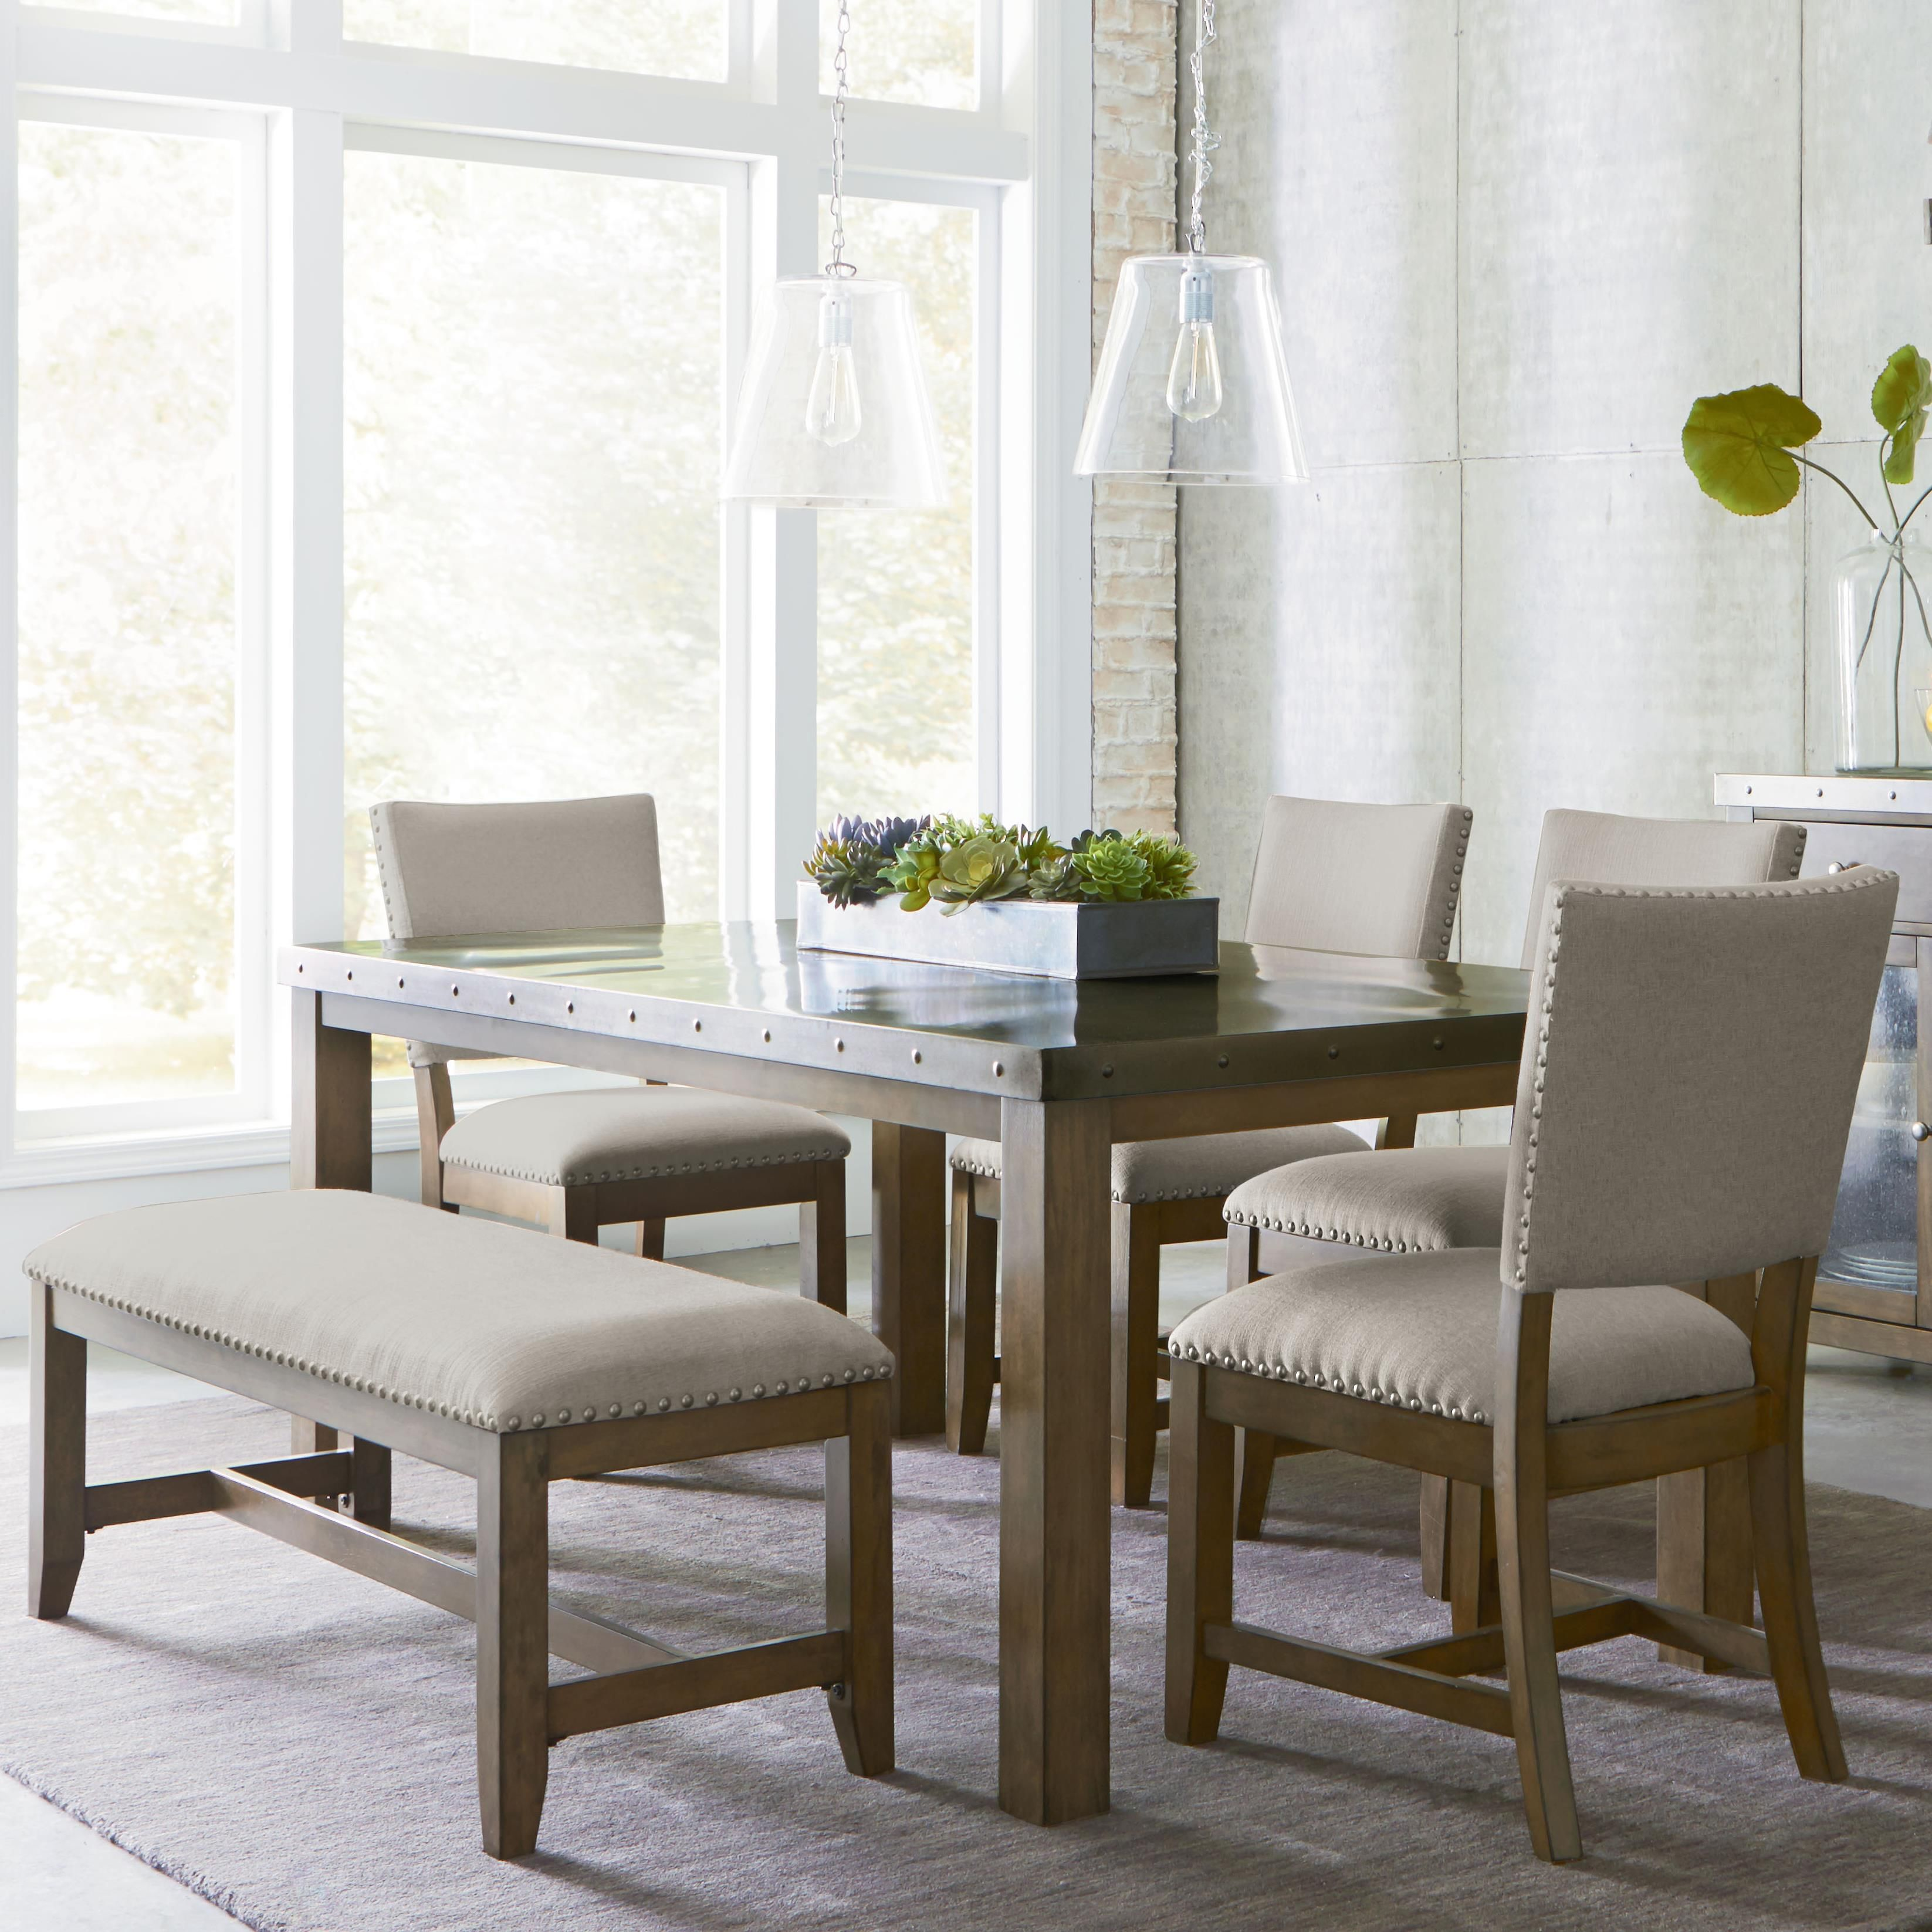 Magnificent This Stainless Steel Top Table Dining Set Is The Perfect Uwap Interior Chair Design Uwaporg